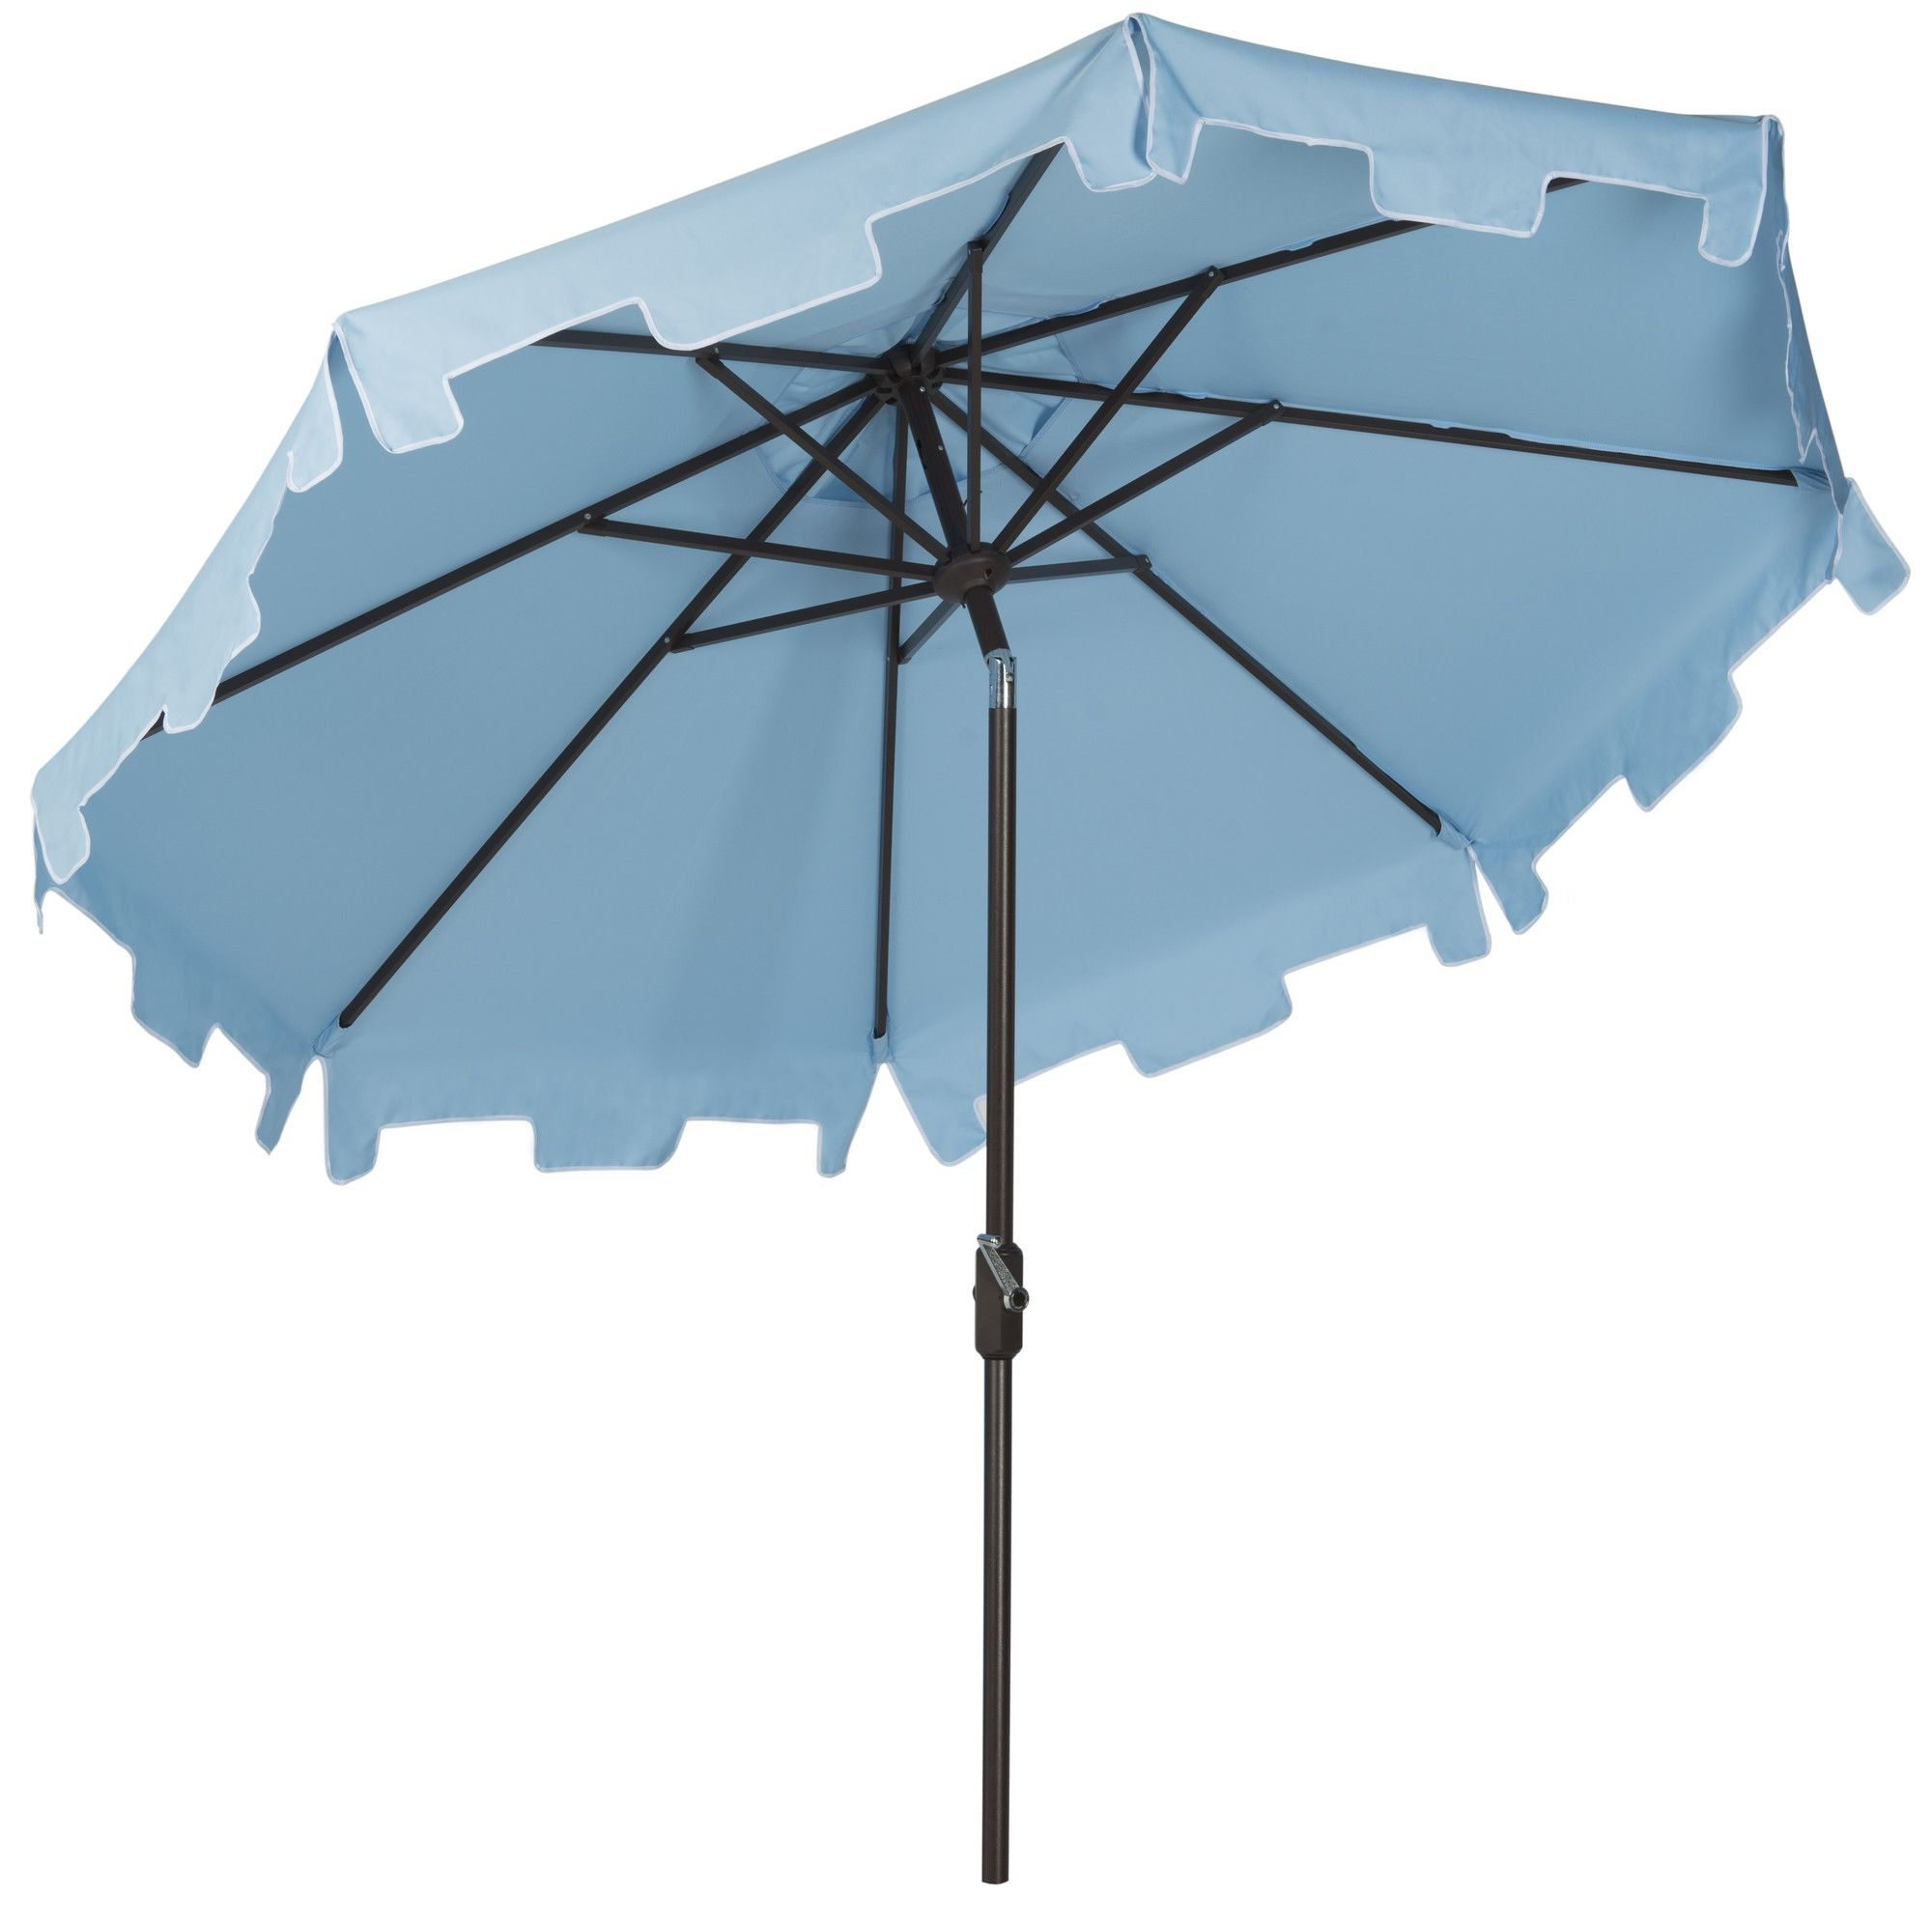 Shop Wayfair For All Patio Umbrellas To Match Every Style And Budget Throughout Newest Wayfair Patio Umbrellas (View 10 of 20)